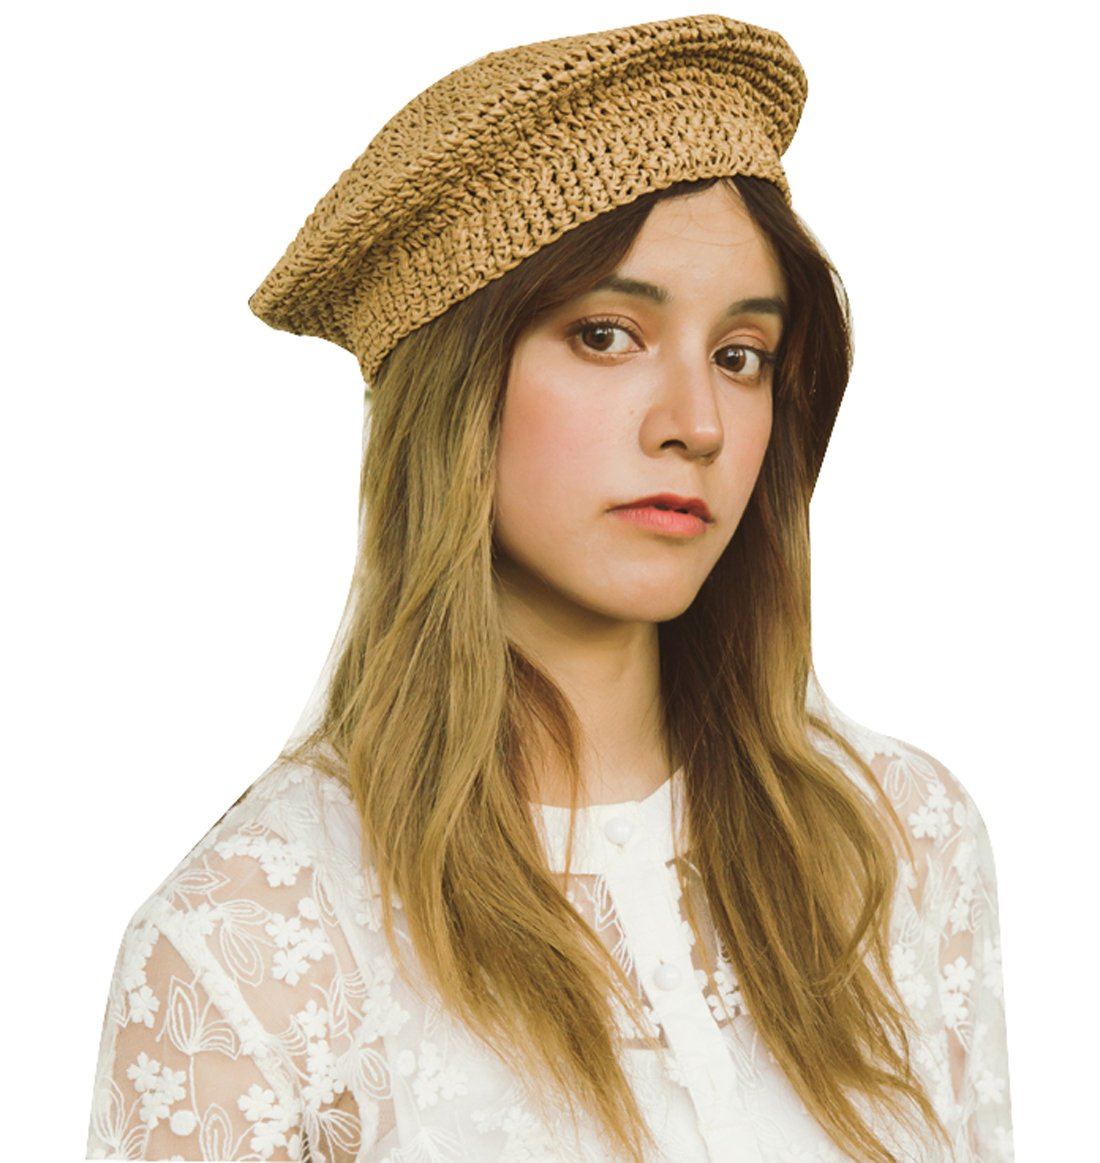 Clecibor Straw Beret Solid Plain Flat Top Woven Berets Fashion French Style Painters Hat Cap, Khaki